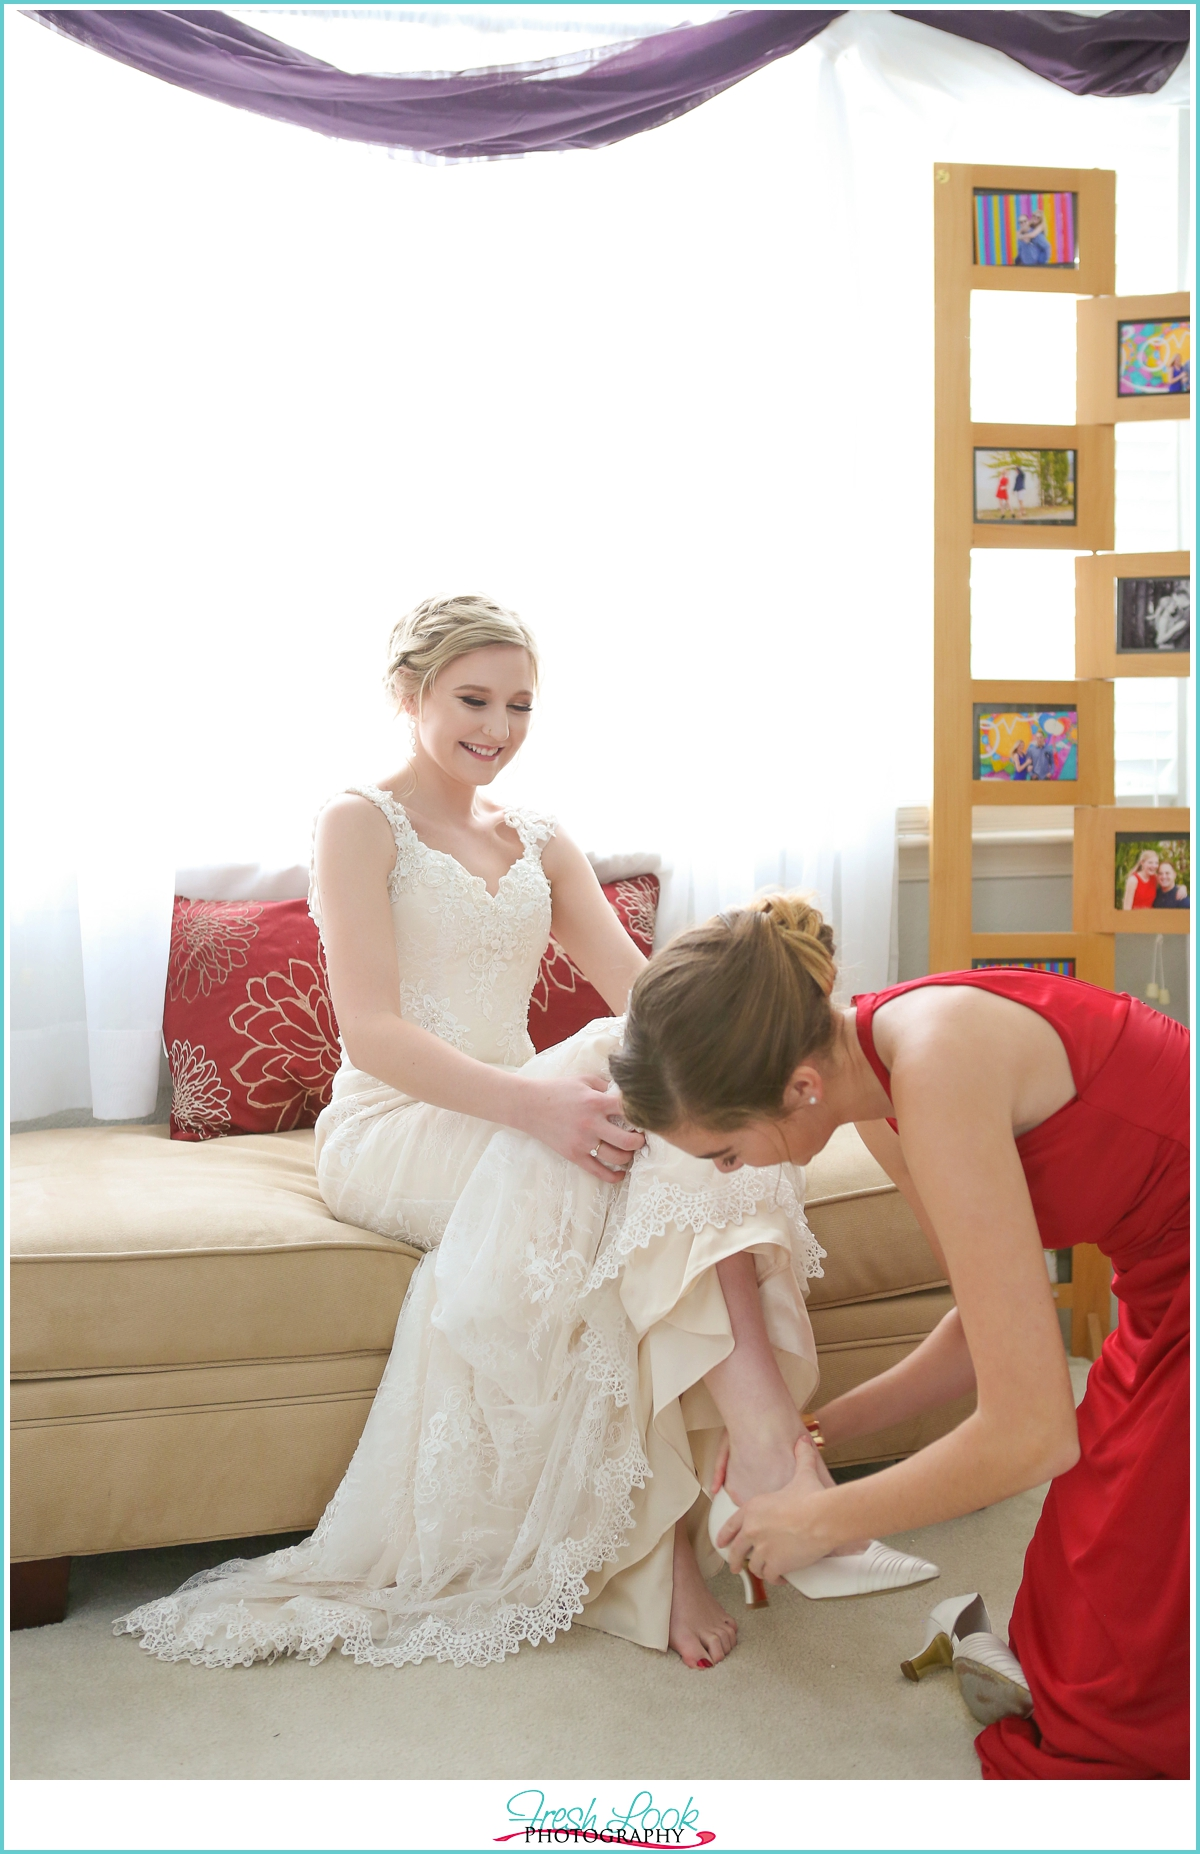 putting bridal shoes on